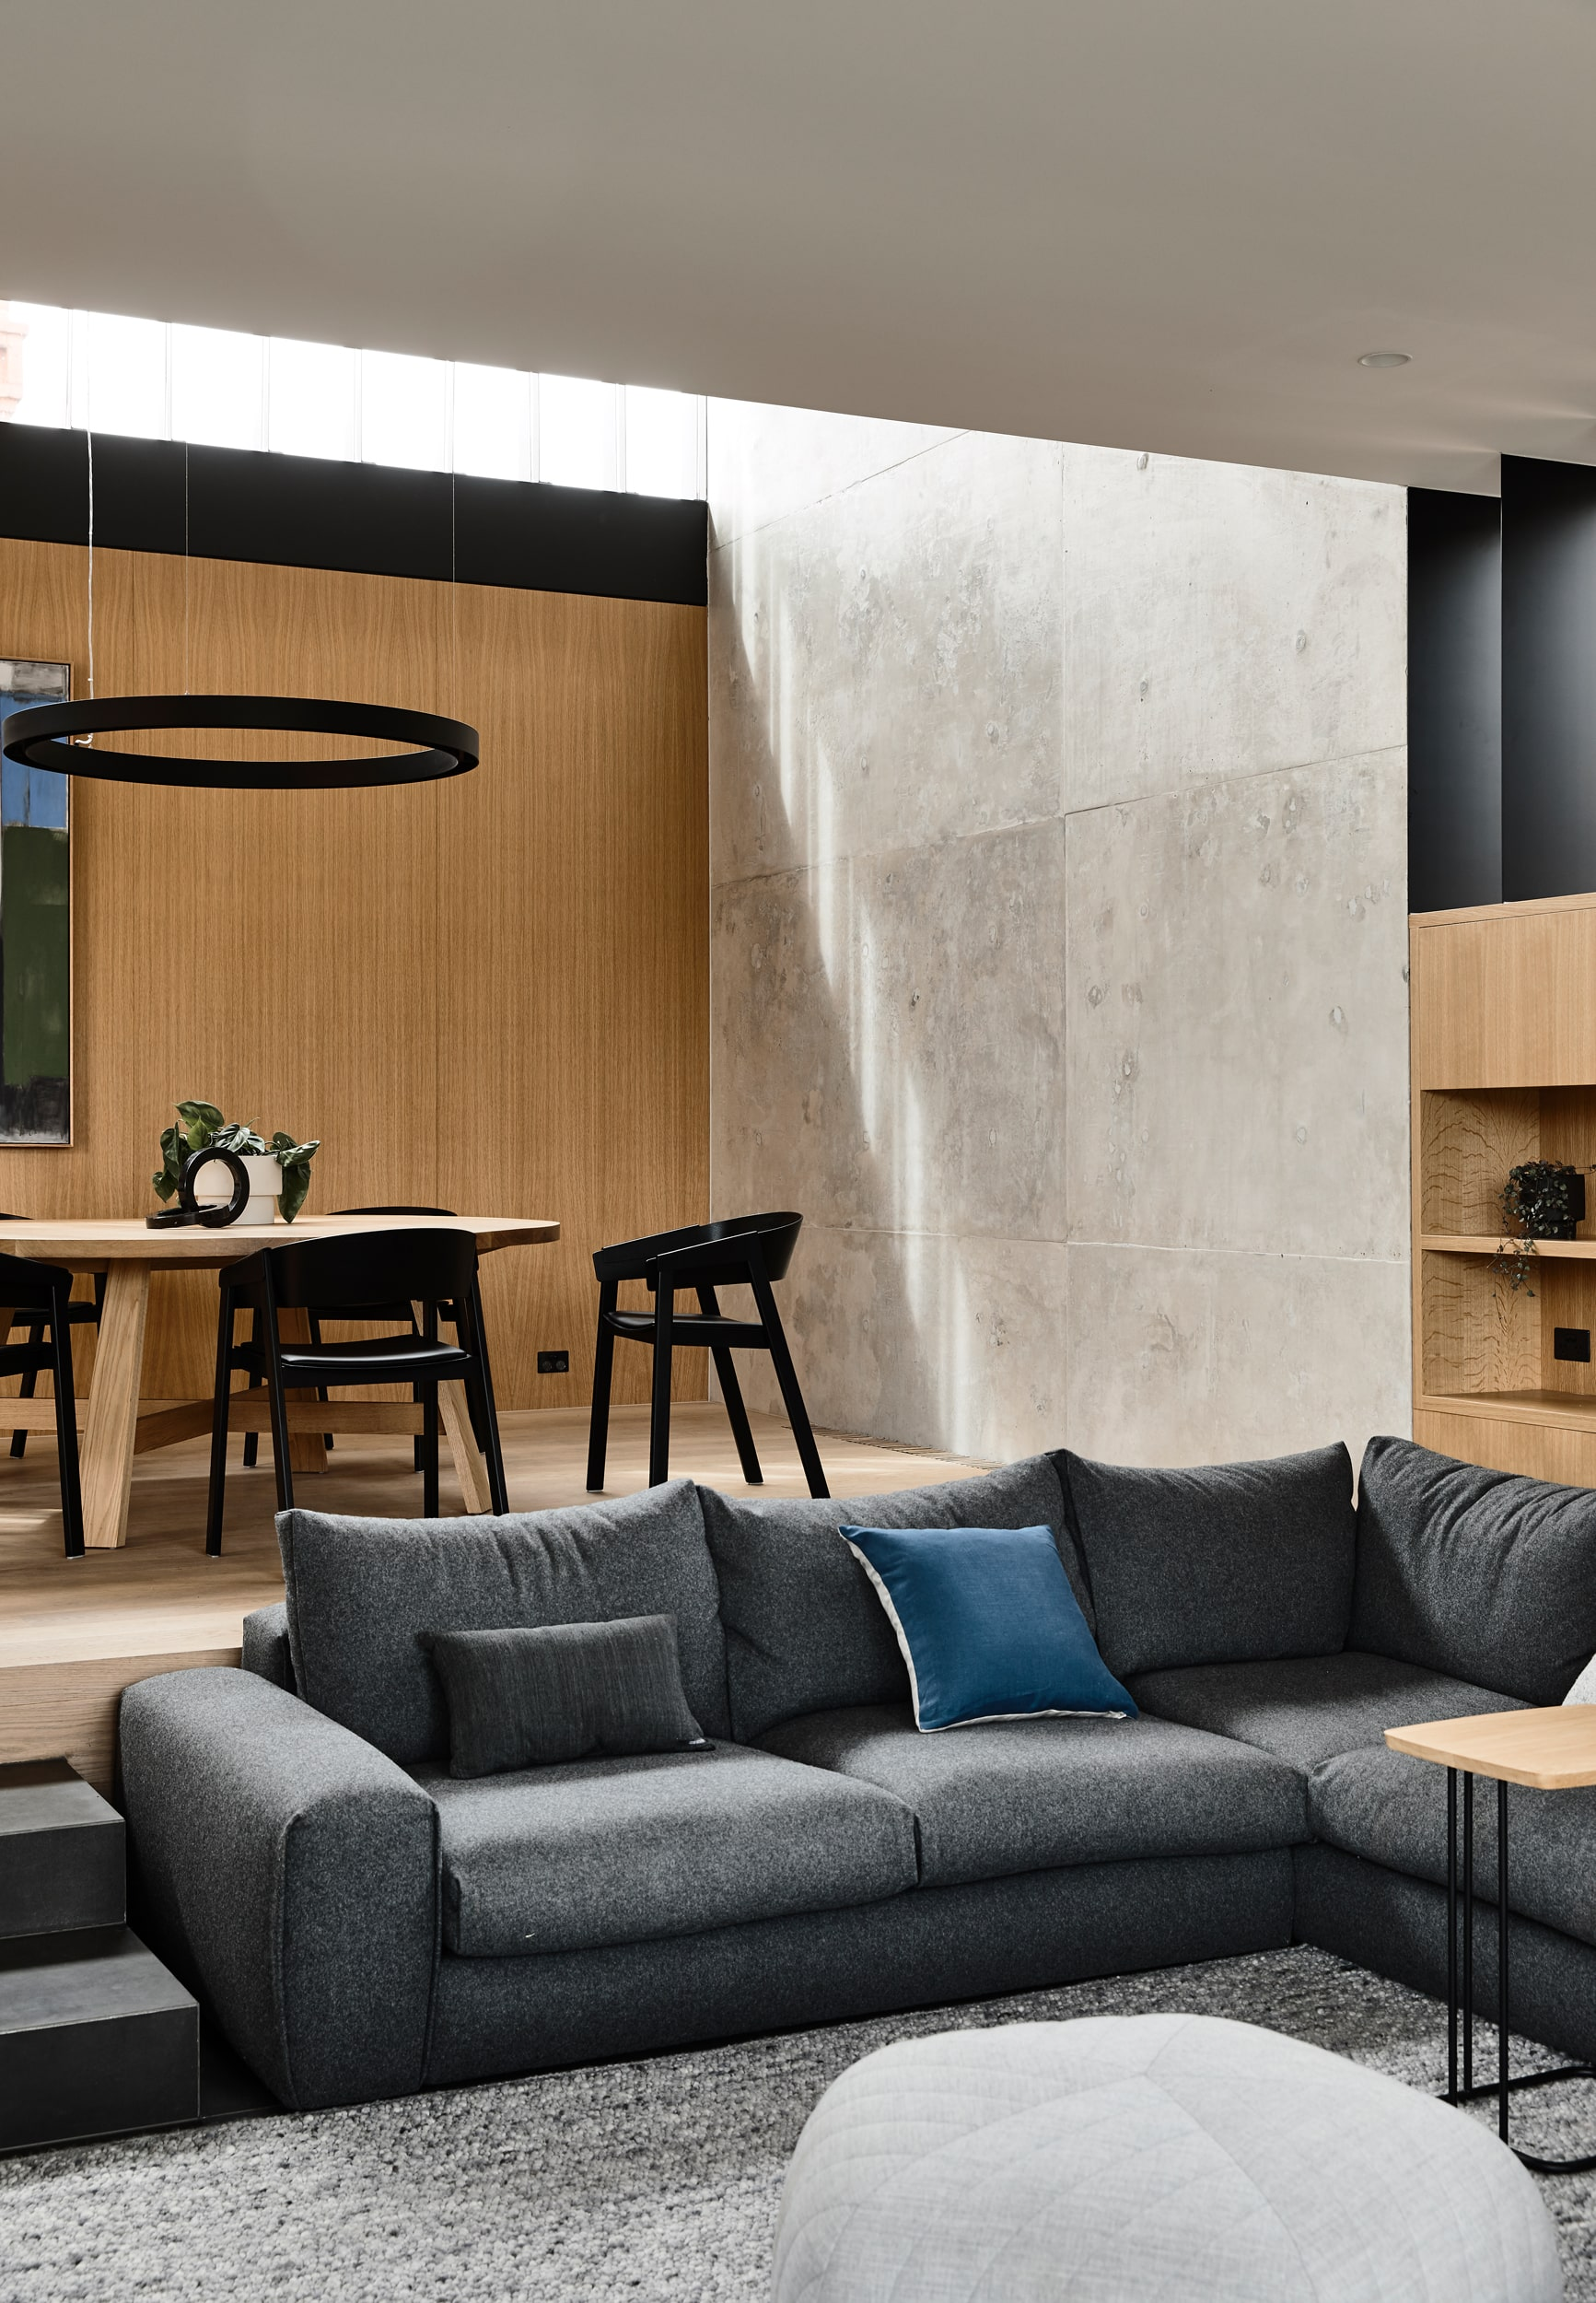 Prahran House By Rob Kennon Architects Local Australian Residential Interior Design And Architects Prahran, Melbourne Image 14